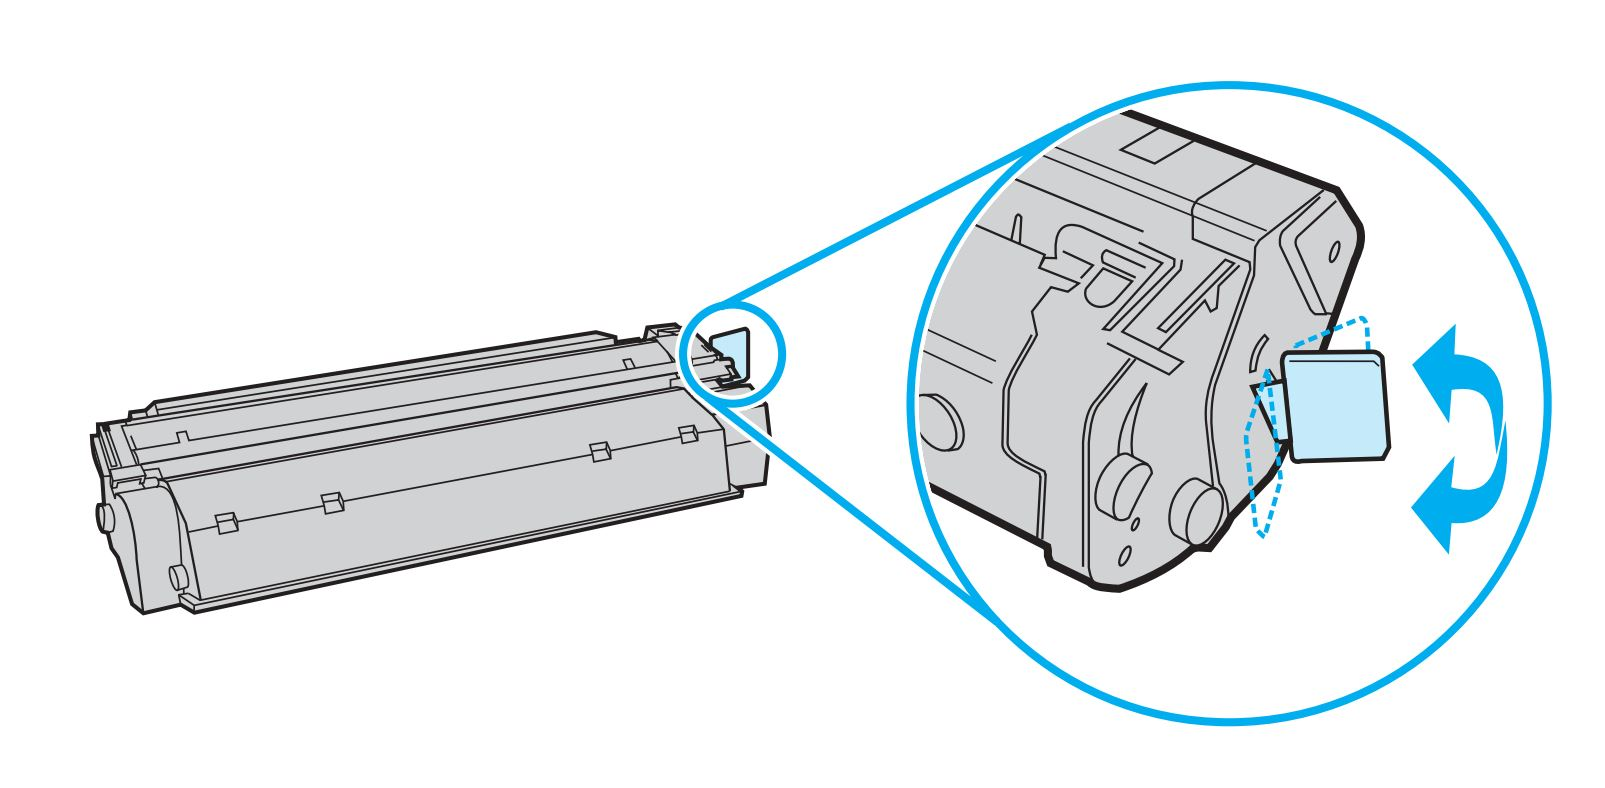 Location of tab on cartridge